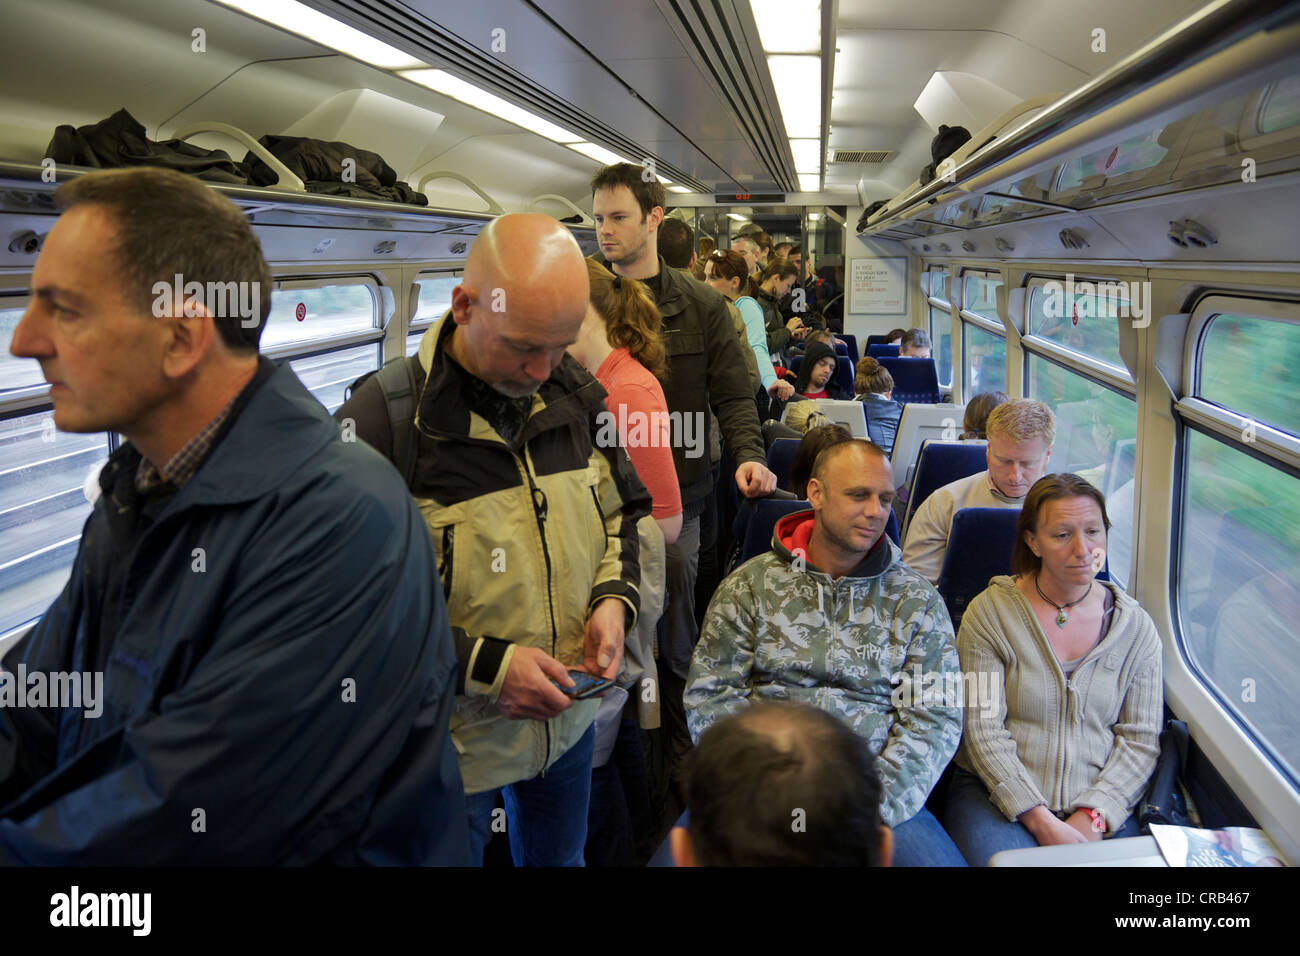 A crowded commuter train on the way to London, England - Stock Image